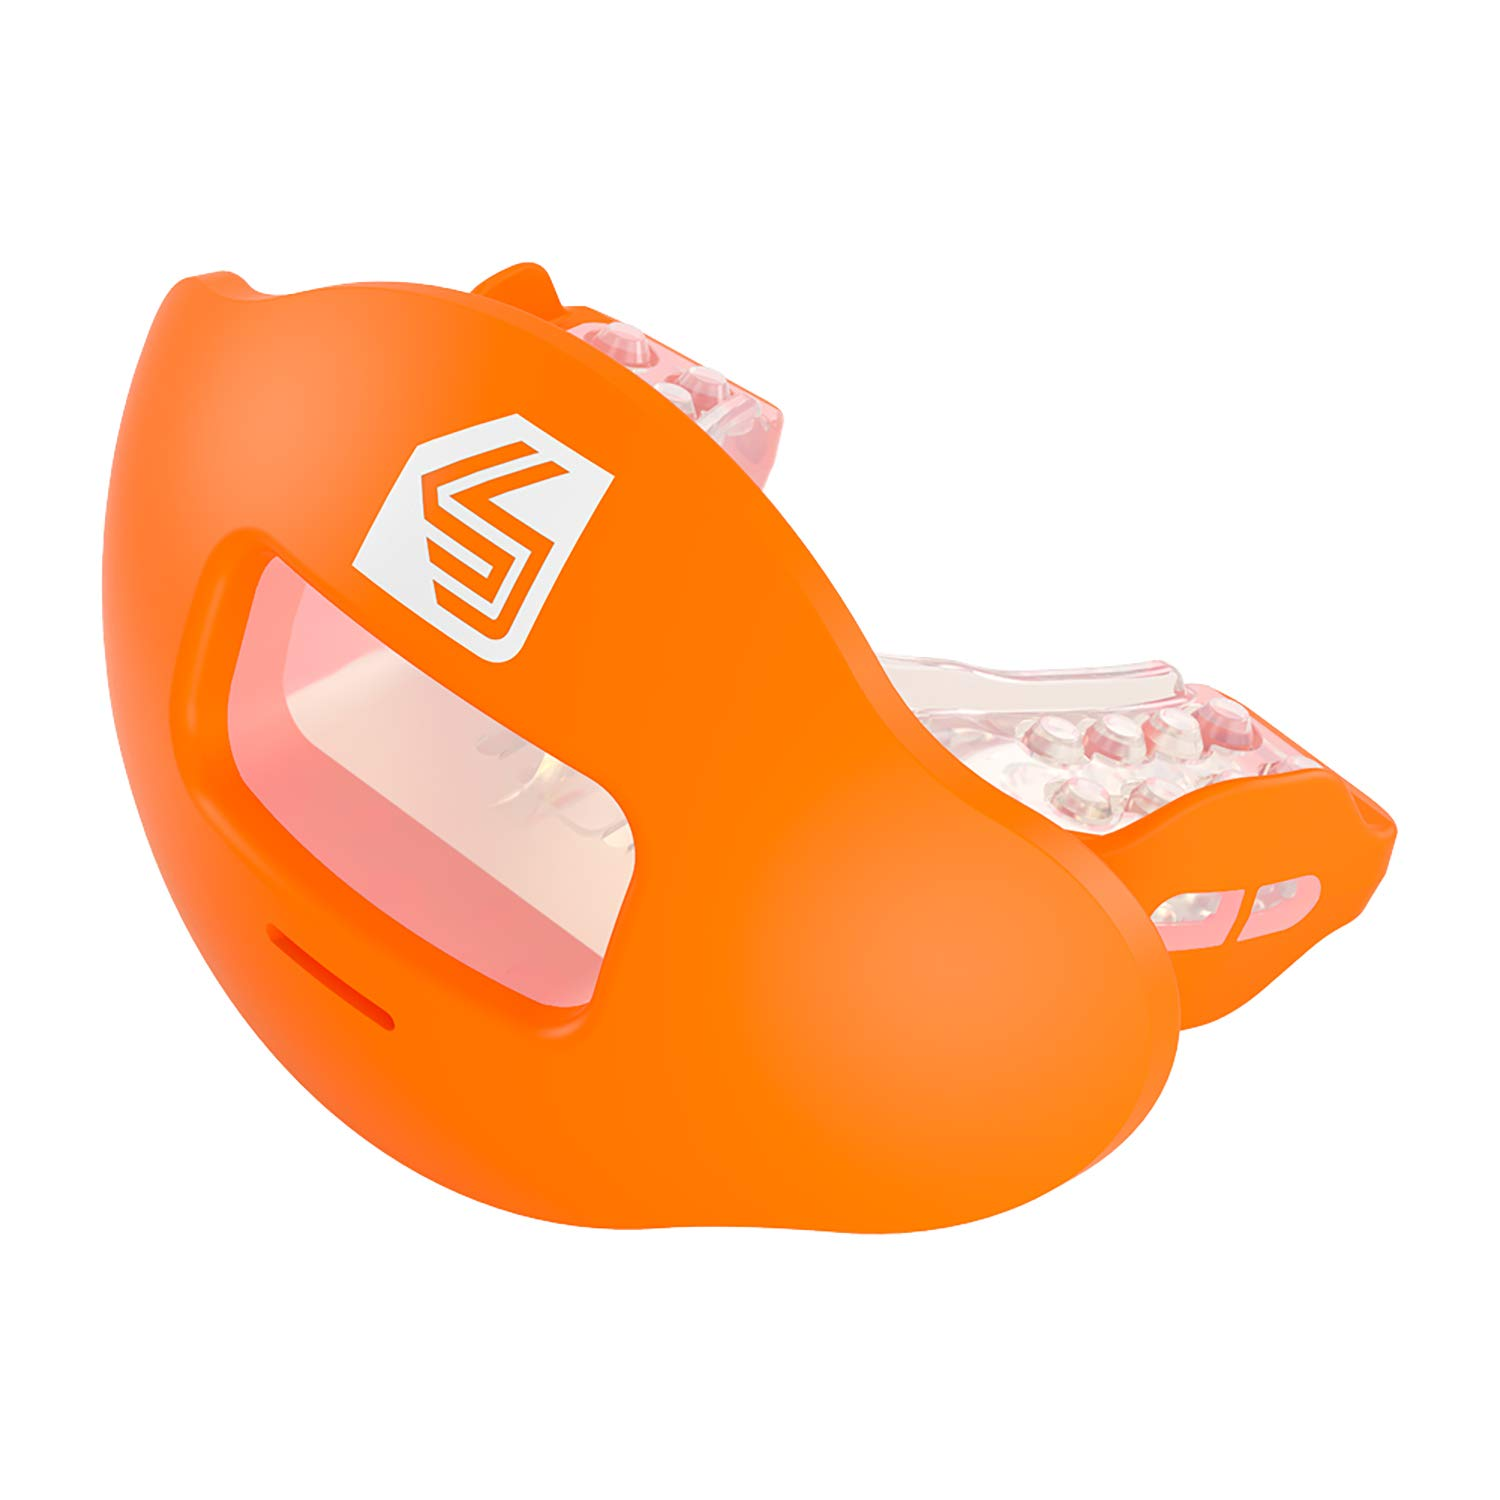 Shock Doctor Max Airflow 2.0 Lip Guard / Mouth Guard for Football 3500. For Youth and Adults OSFA. Breathable Wide Opening Mouthpiece. Helmet Strap Included. by Shock Doctor